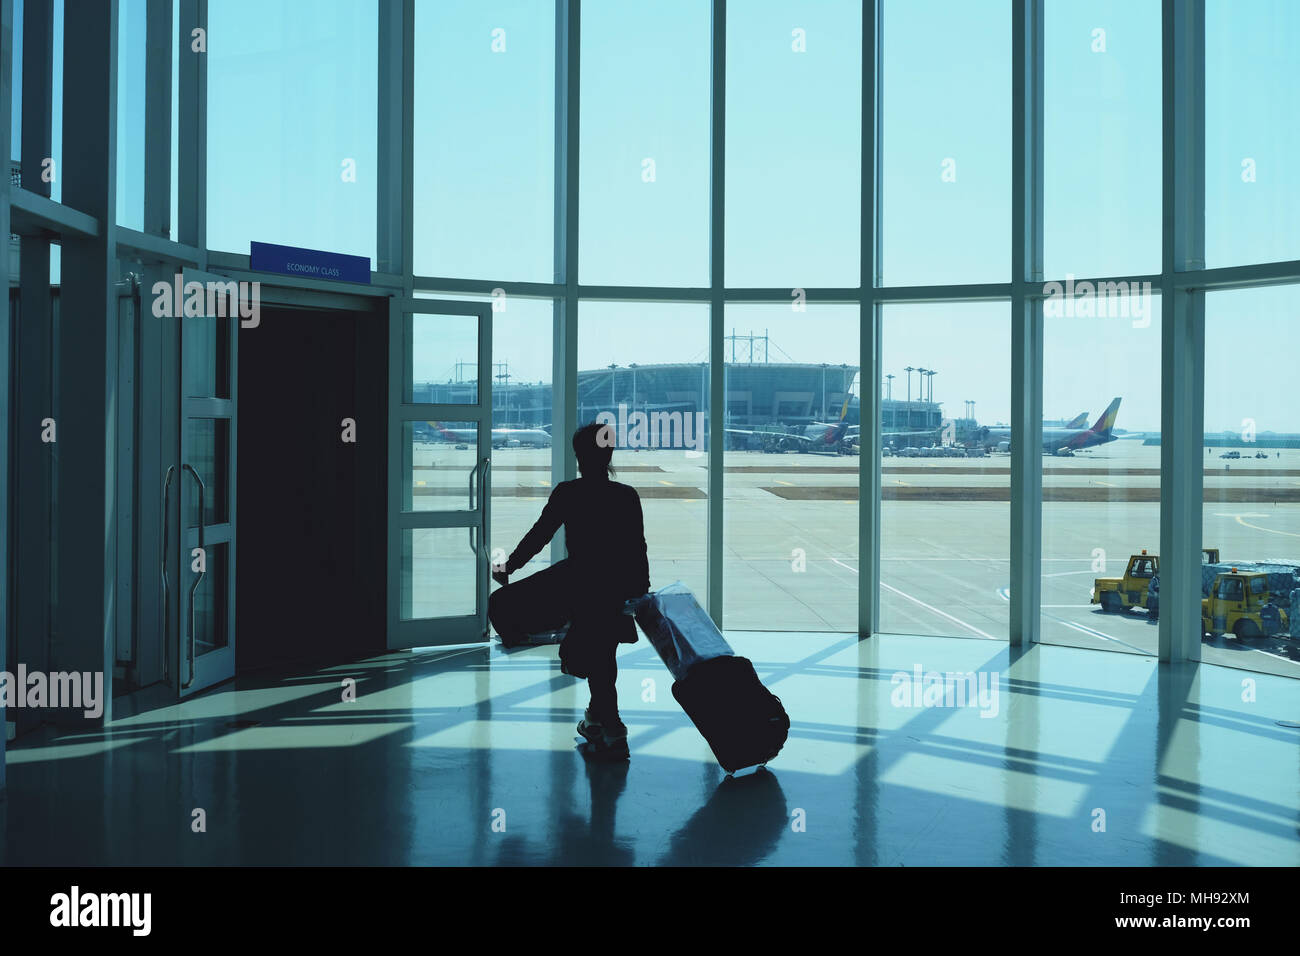 Woman dragging a small carry on luggage at airport corridor walking to departure gates silhouette - Stock Image